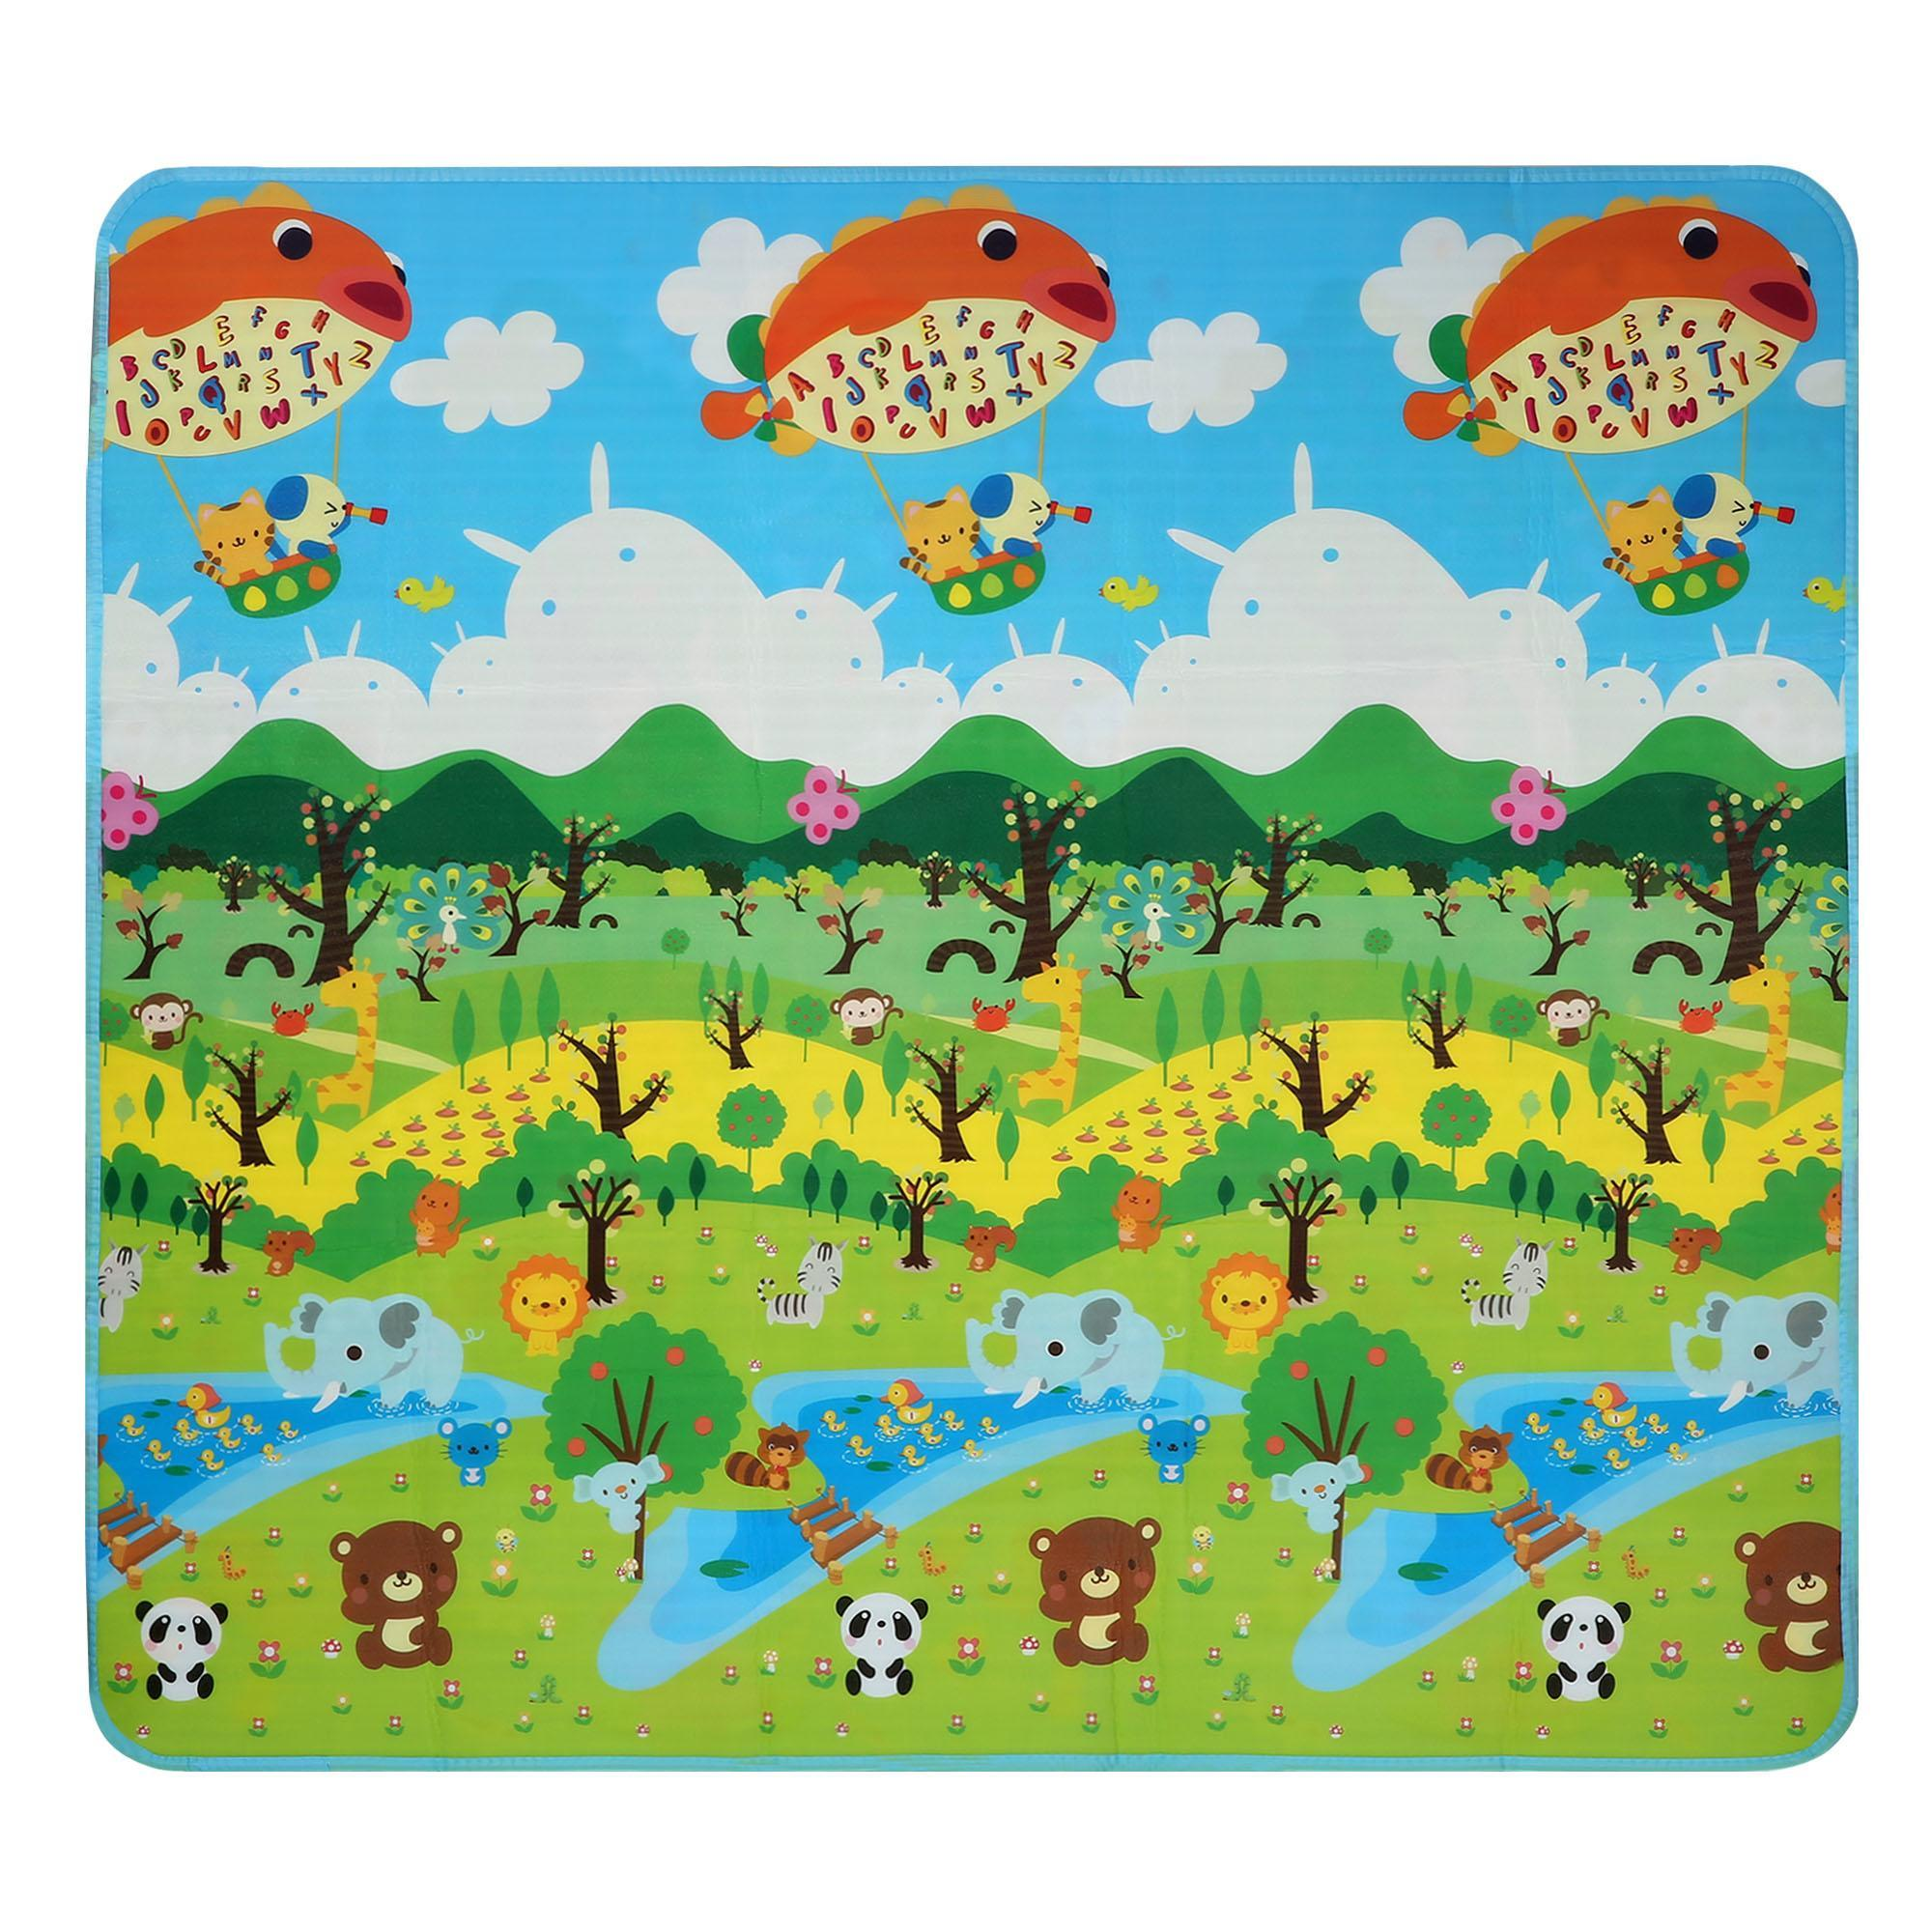 2x1.8m Children Play-Mat Picnic Cushion Crawling Mat Two Sides Playing Activity Pad 0